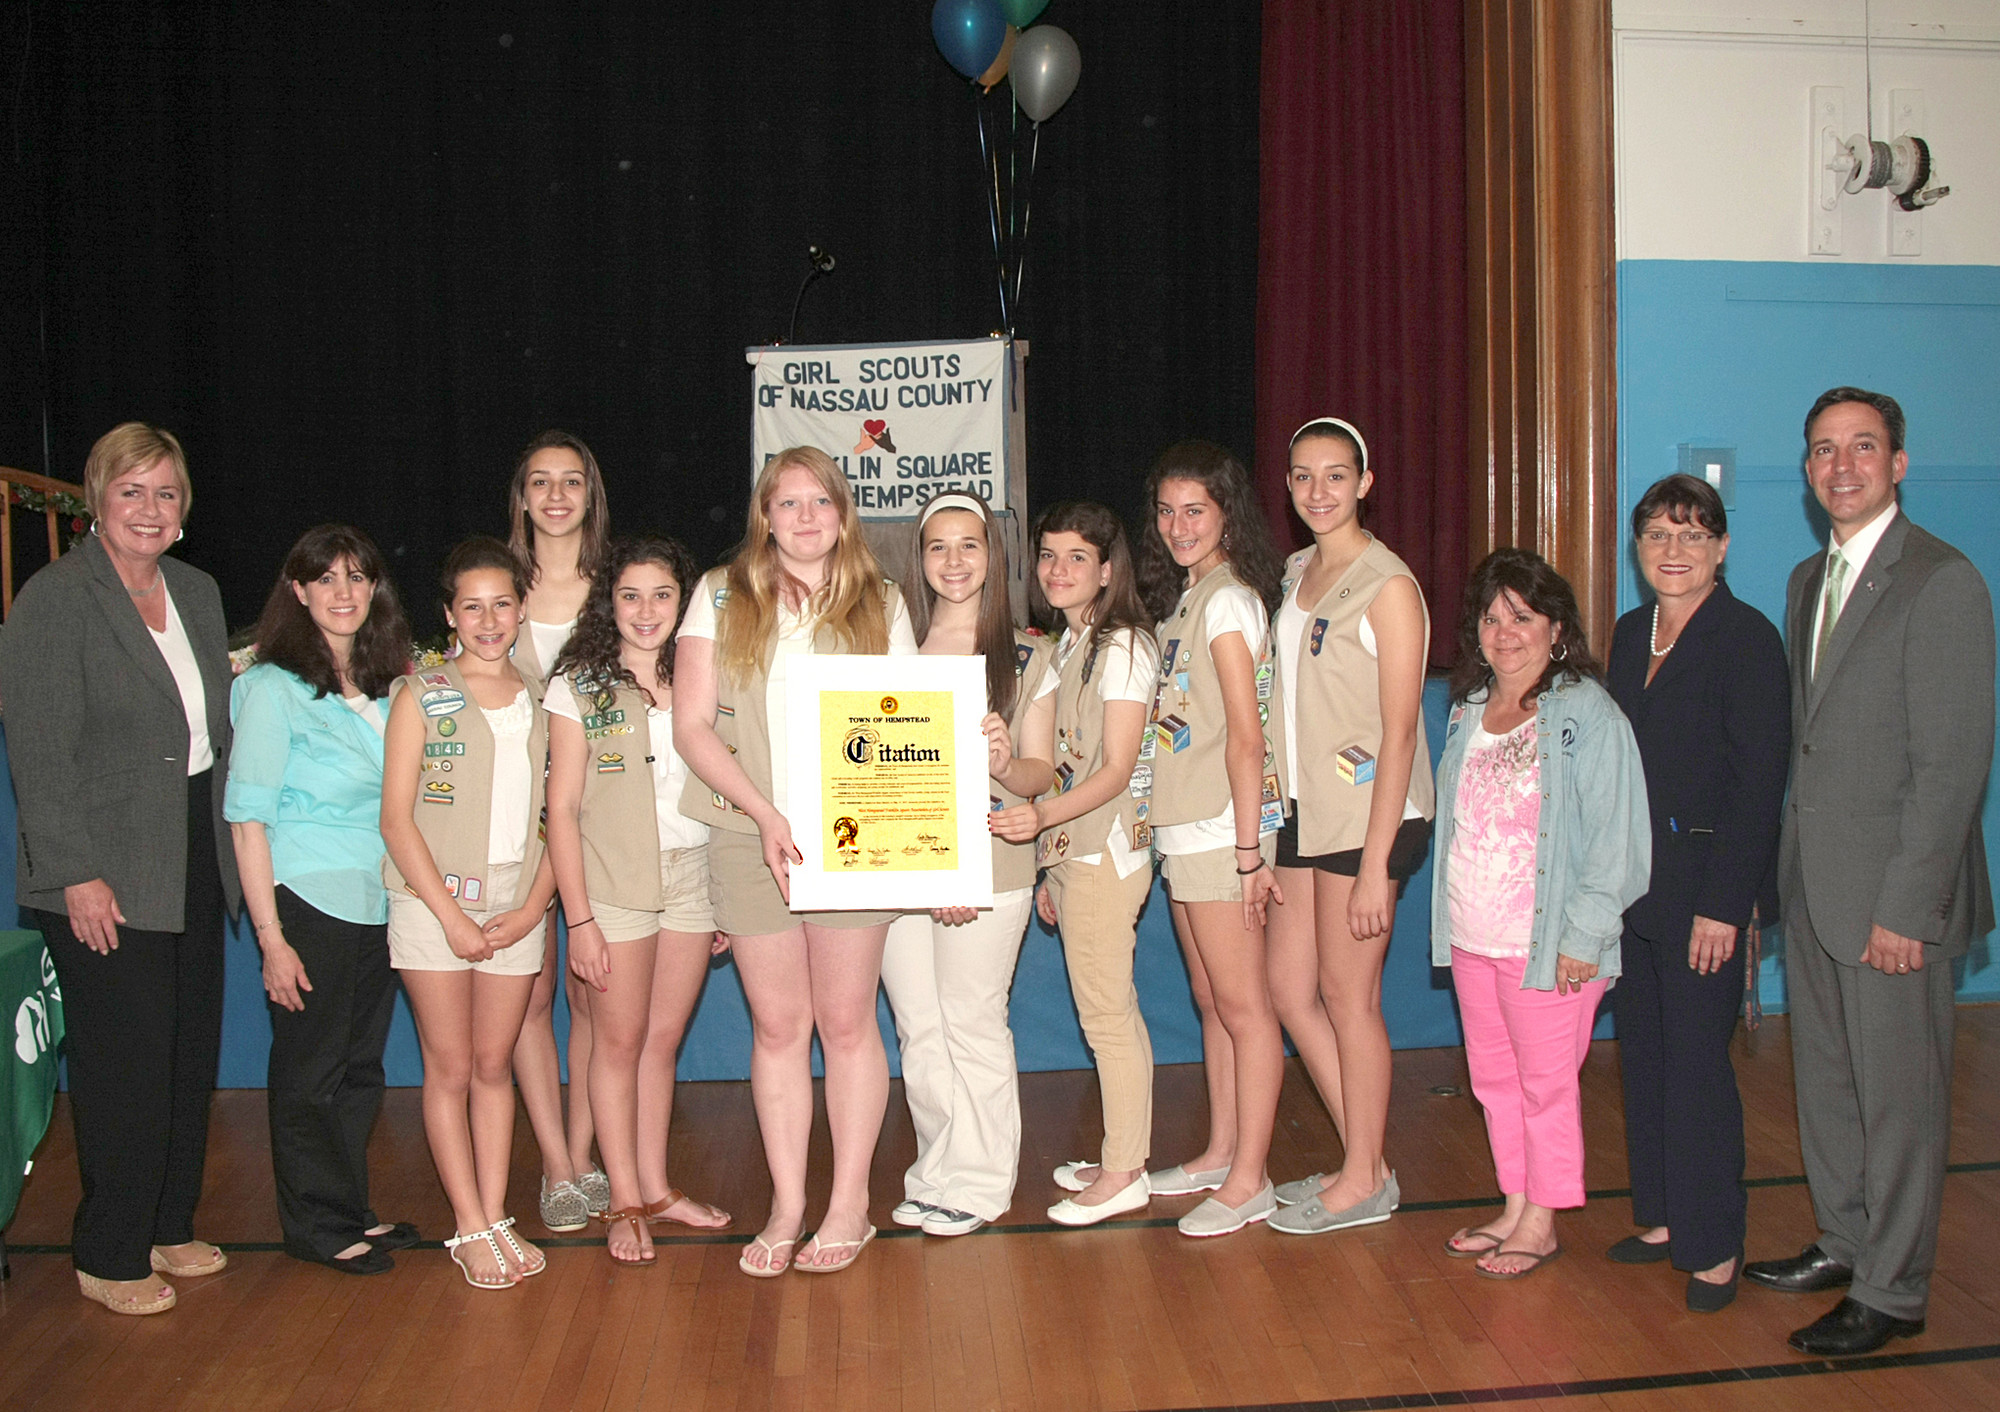 New York State Senator Jack Martins, Nassau County Clerk Maureen O'Connell, Town of Hempstead Supervisor Kate Murray congratulate Troop 1220 with the Bronze Award alongside Leader Janet Felter.